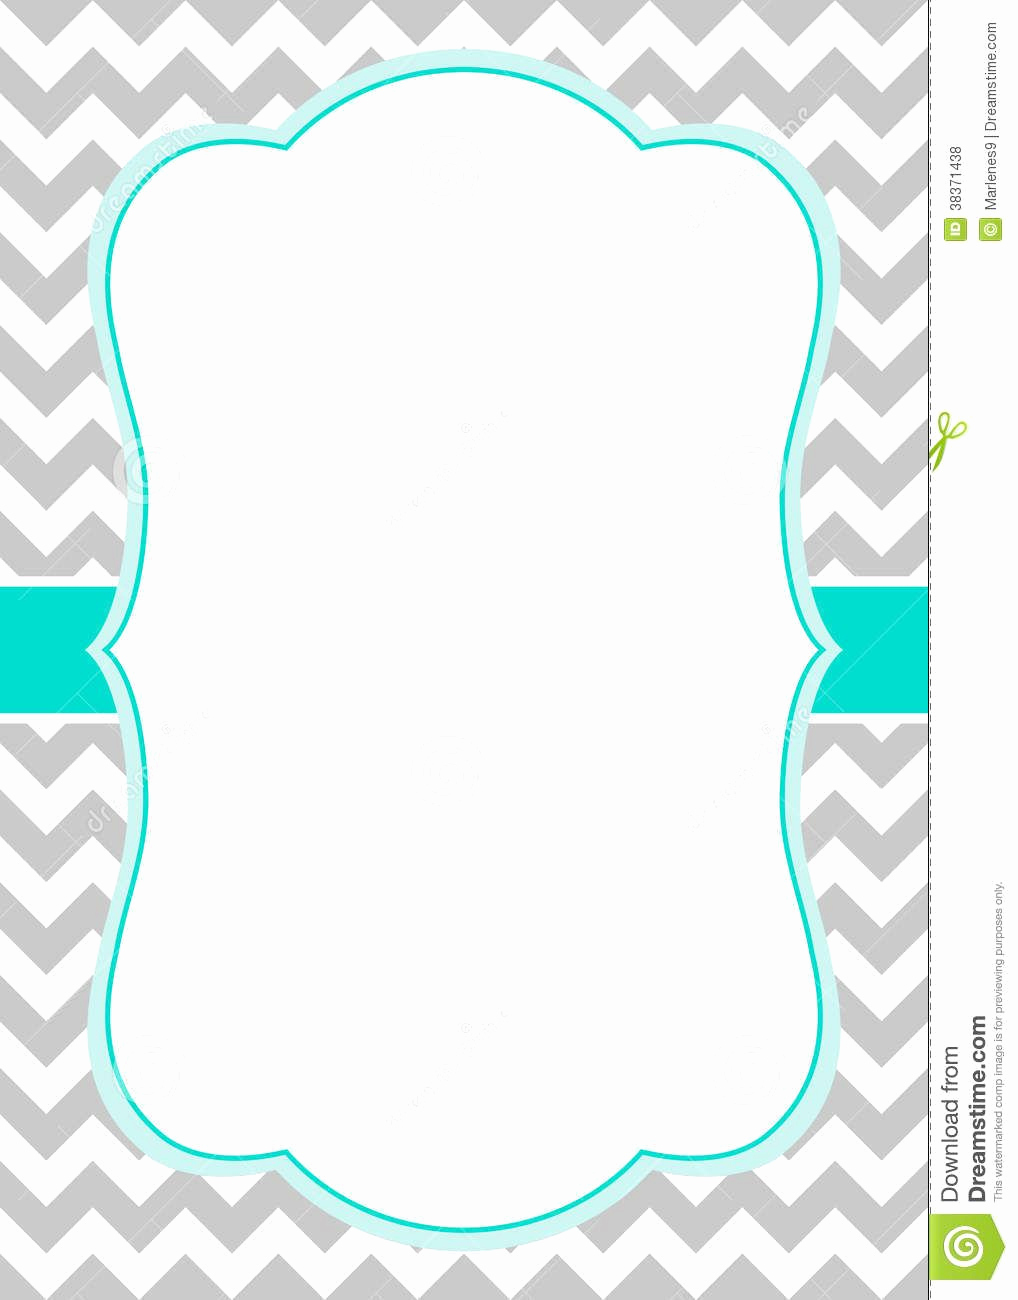 Baby Shower Invitation Templates Elegant Free Chevron Border Templateadmin Admin